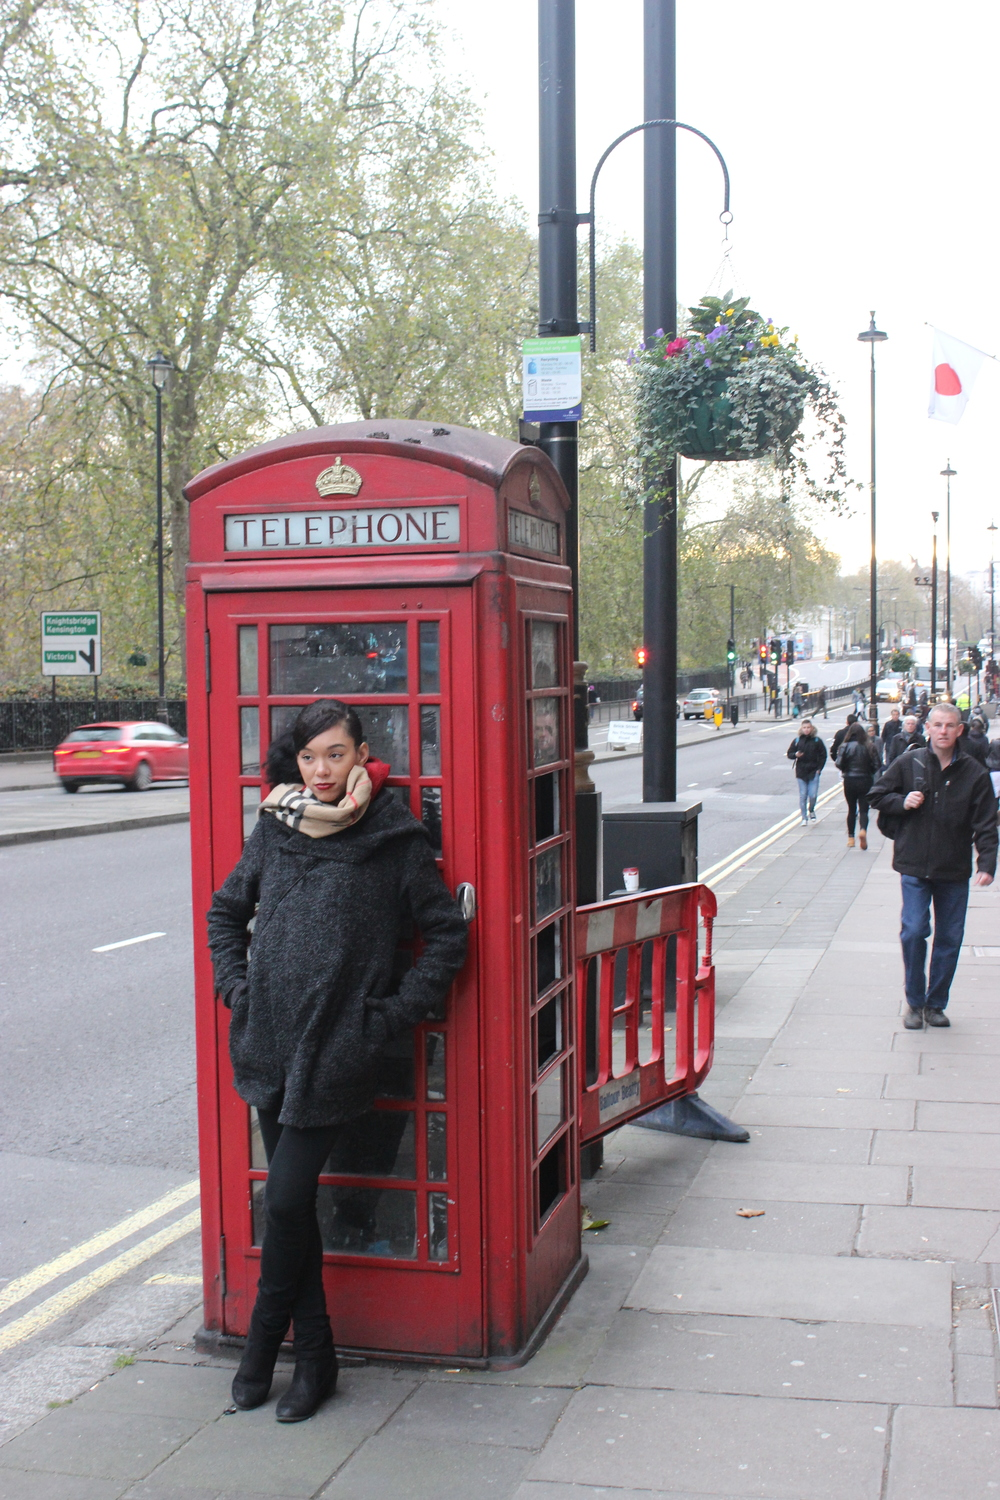 Bre in Booth - London, England